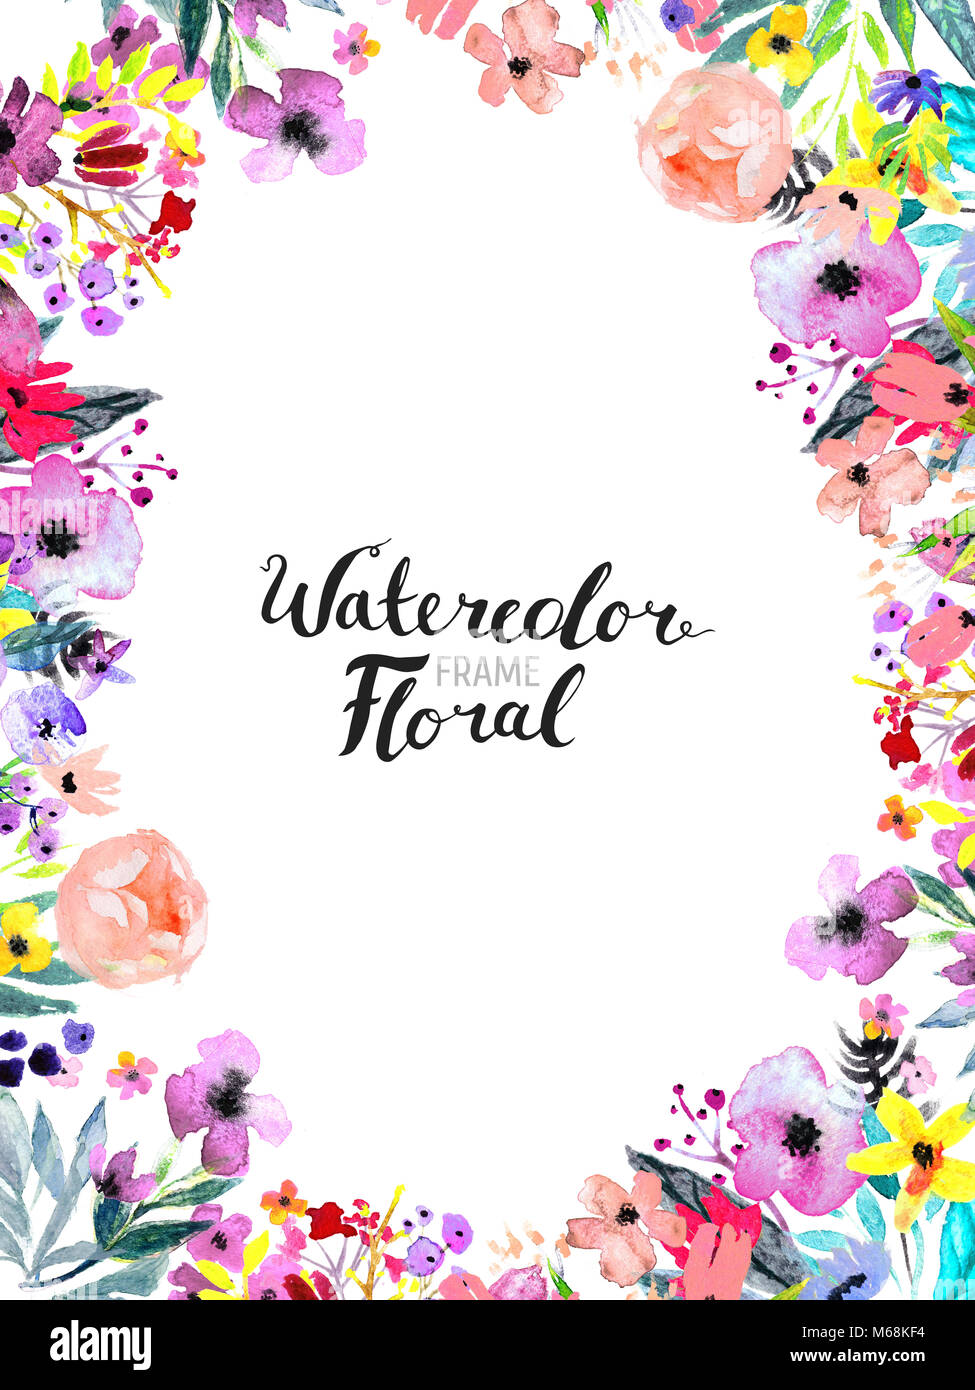 Watercolor Floral Background Hand Painted Border Of Flowers Frame Isolated On White And Brush Lettering Rose Poppy Peony Illustration Spring B